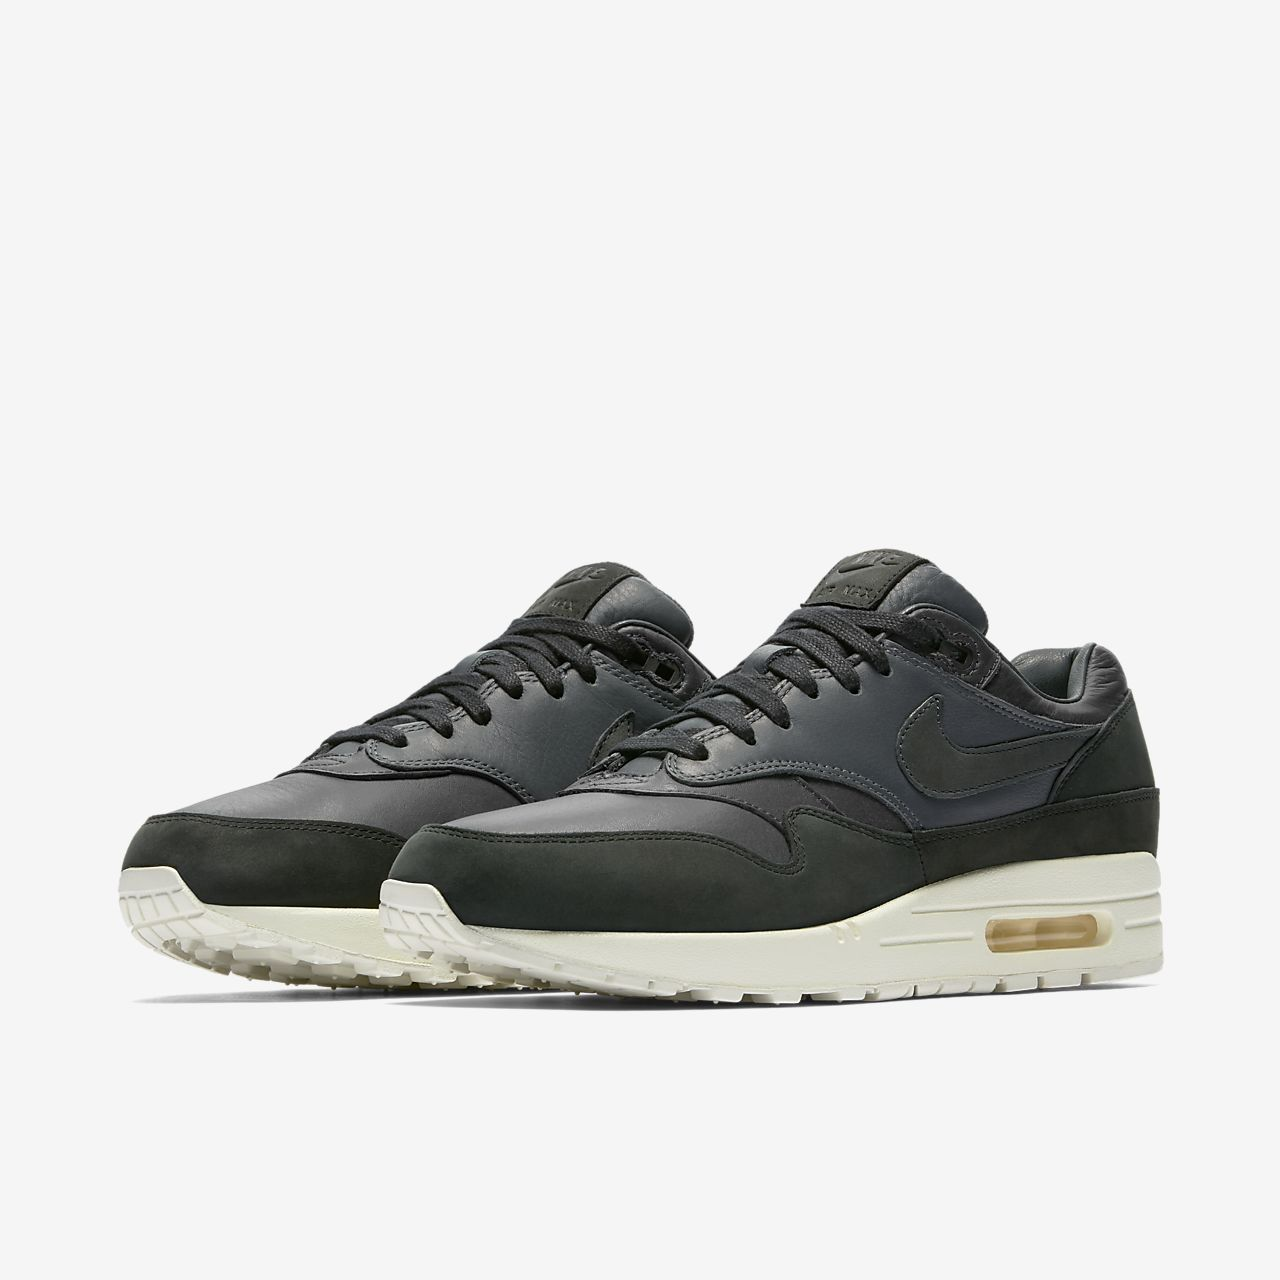 new product 19329 63fa9 ... Chaussure Nike Air Max 1 Pinnacle pour Homme